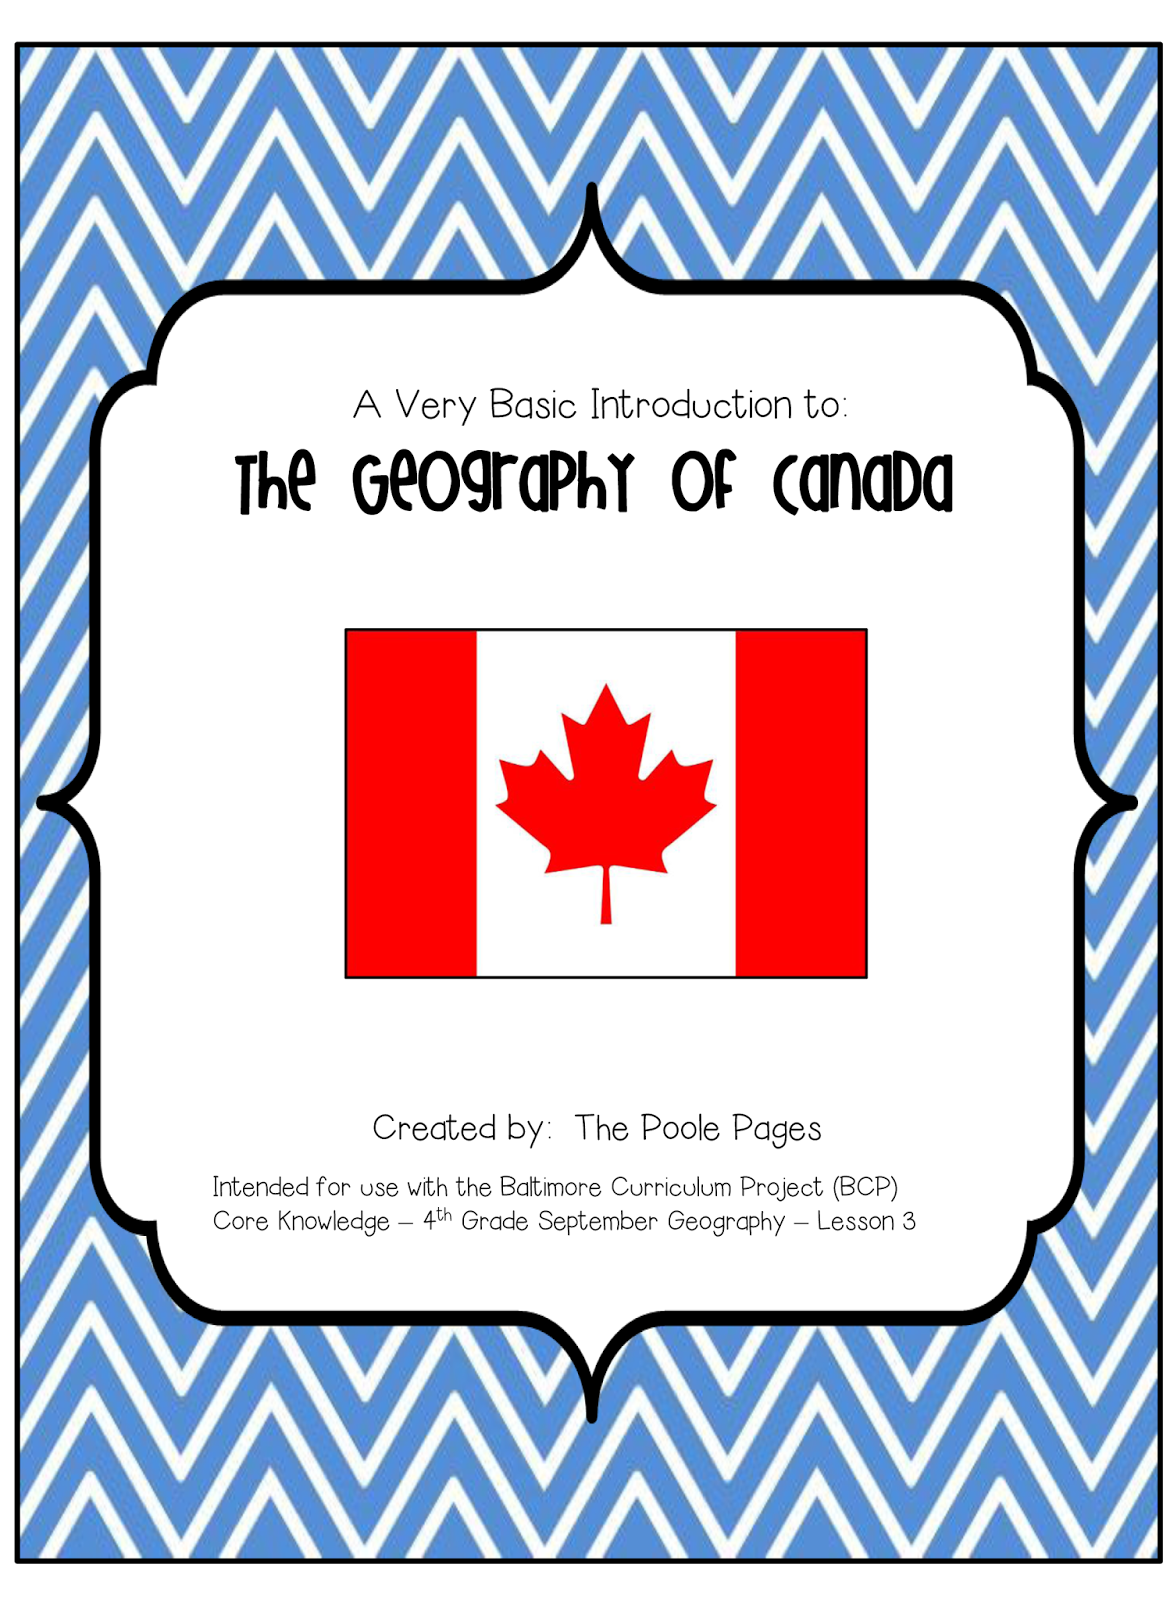 http://www.teacherspayteachers.com/Product/Geography-of-Canada-1334602